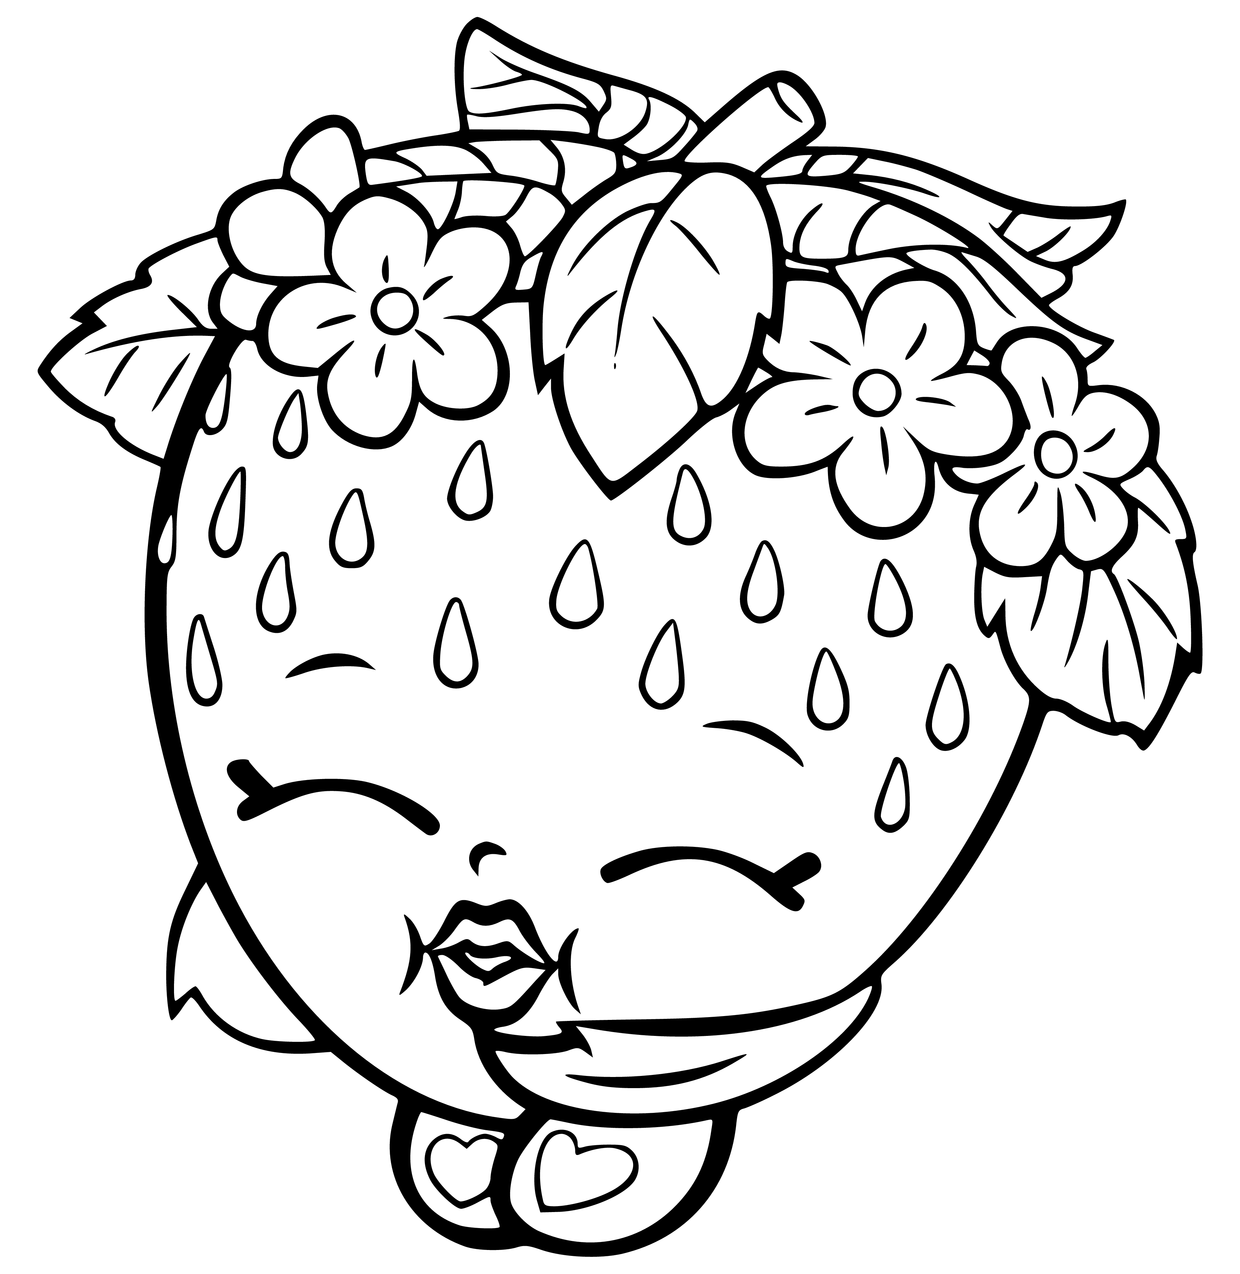 shopkin coloring pictures roxy ring with diamond shopkin coloring page free coloring shopkin pictures